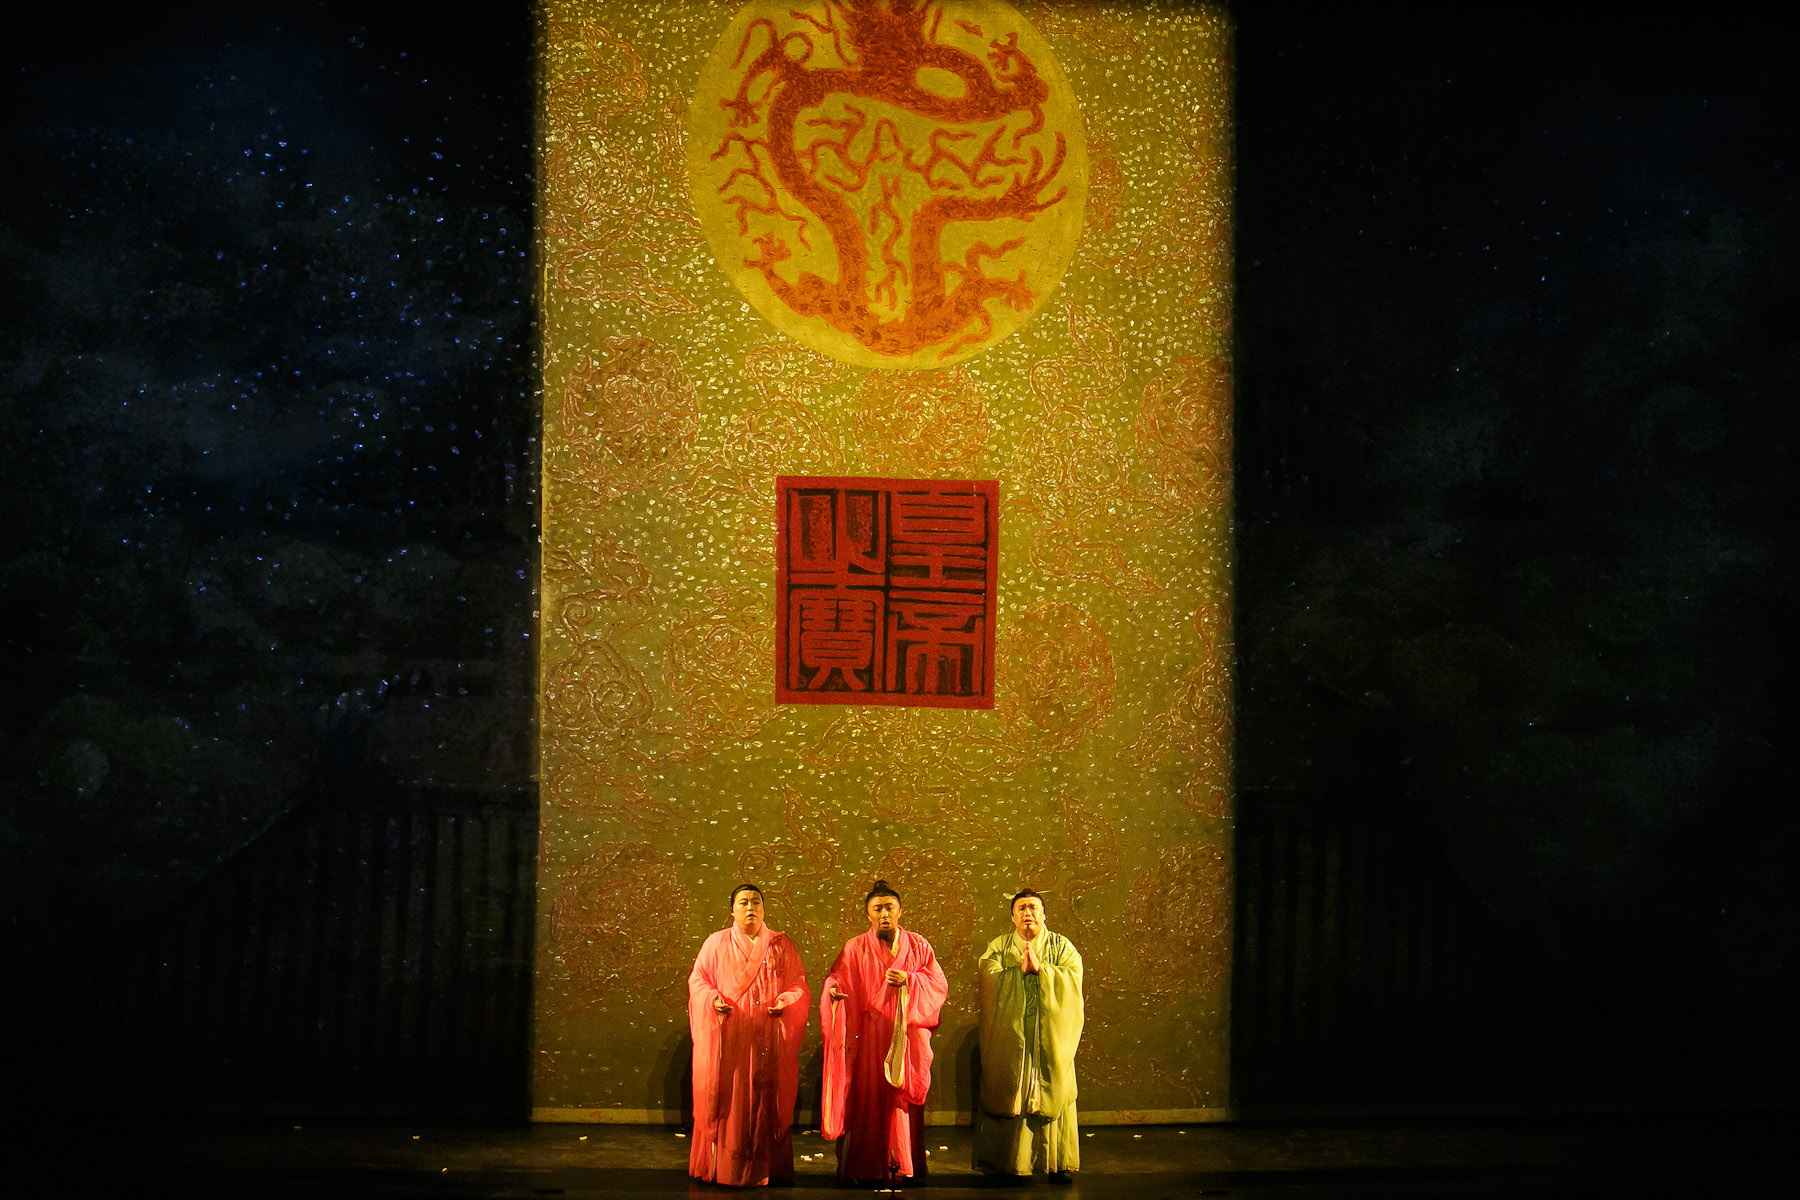 A scene from China National Opera House production of Turandot in Cankarjev dom Cultural & Congress center in Ljubljana, Slovenia, Sep. 1, 2015.